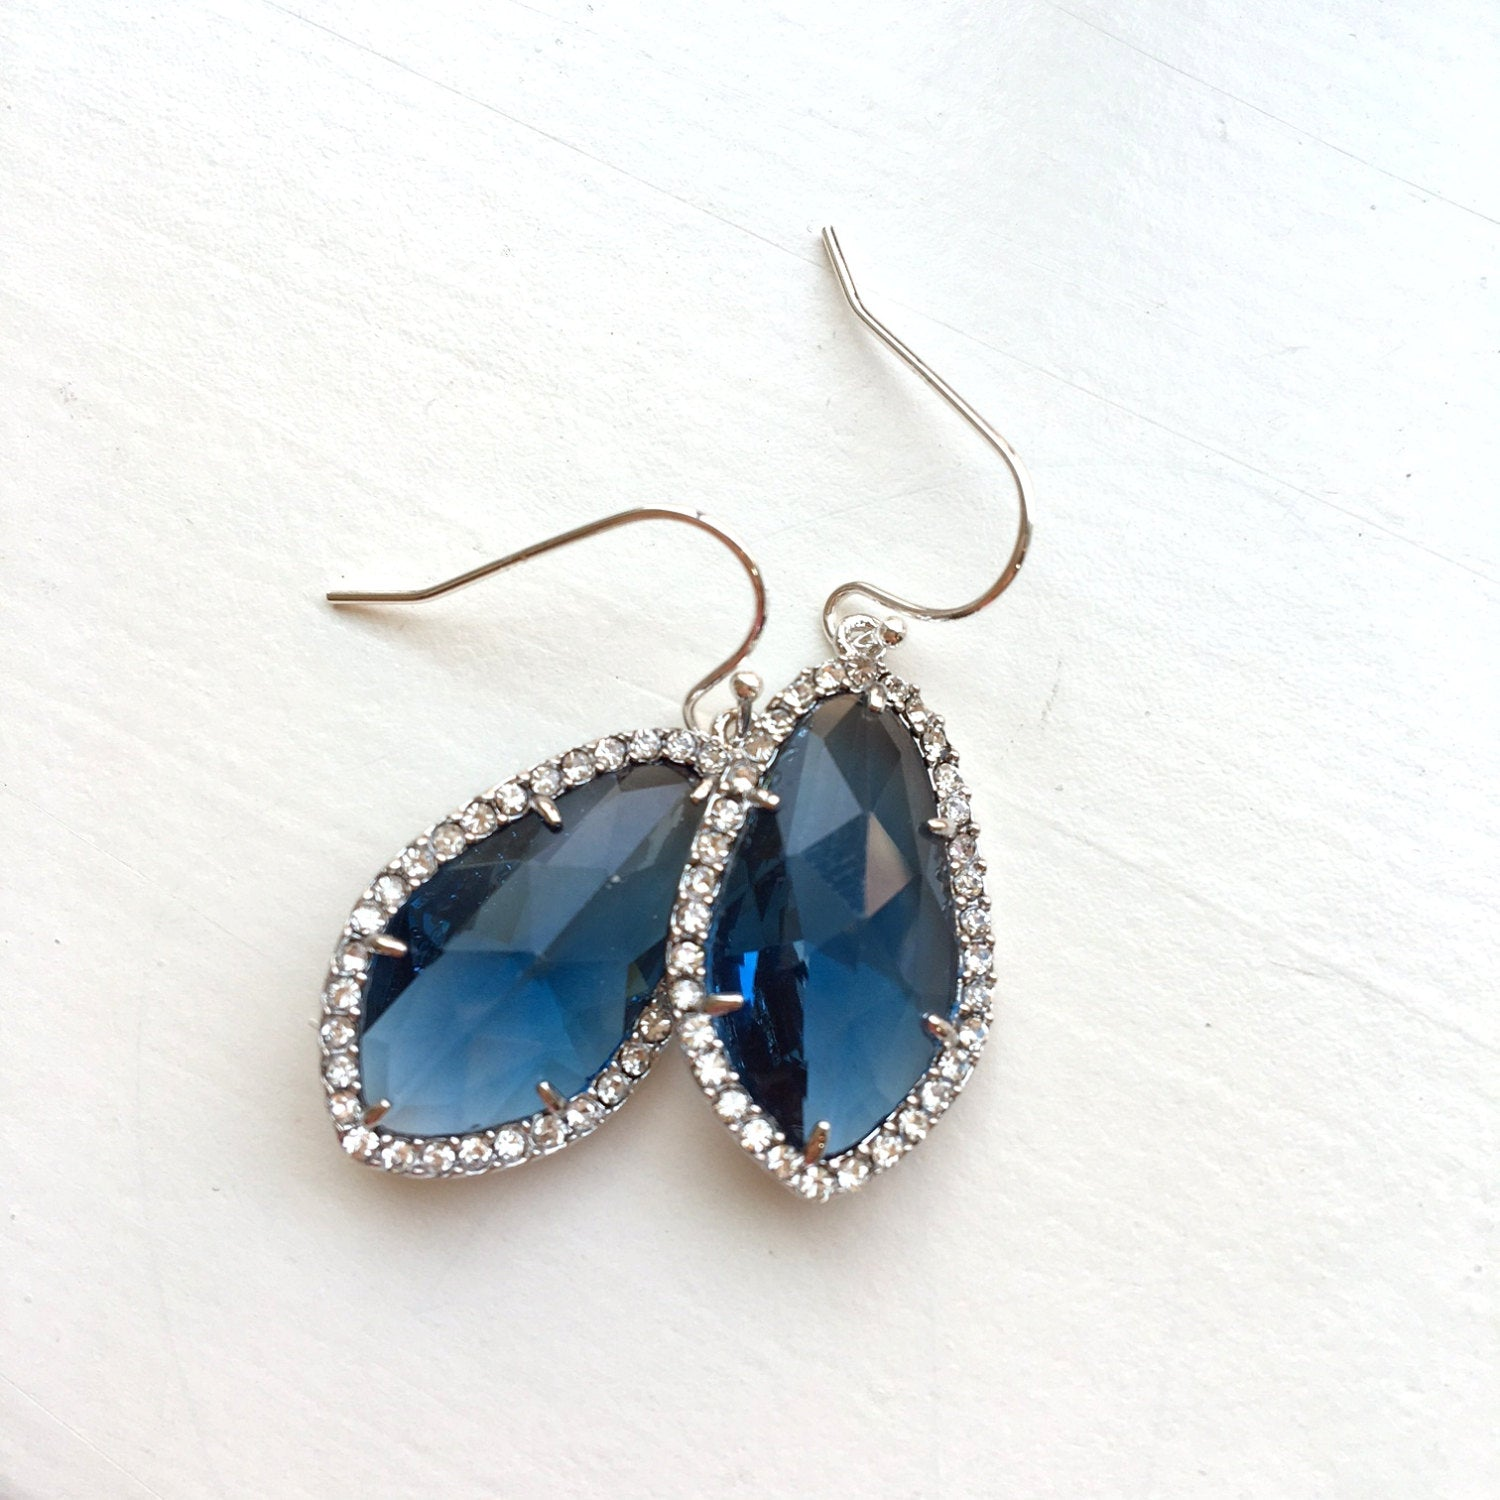 Wedding Jewelry Large Silver Sapphire Navy Blue Earrings Crystal Clear Setting Blue Jewelry - Navy Bridesmaid Jewelry - Bridal Earrings